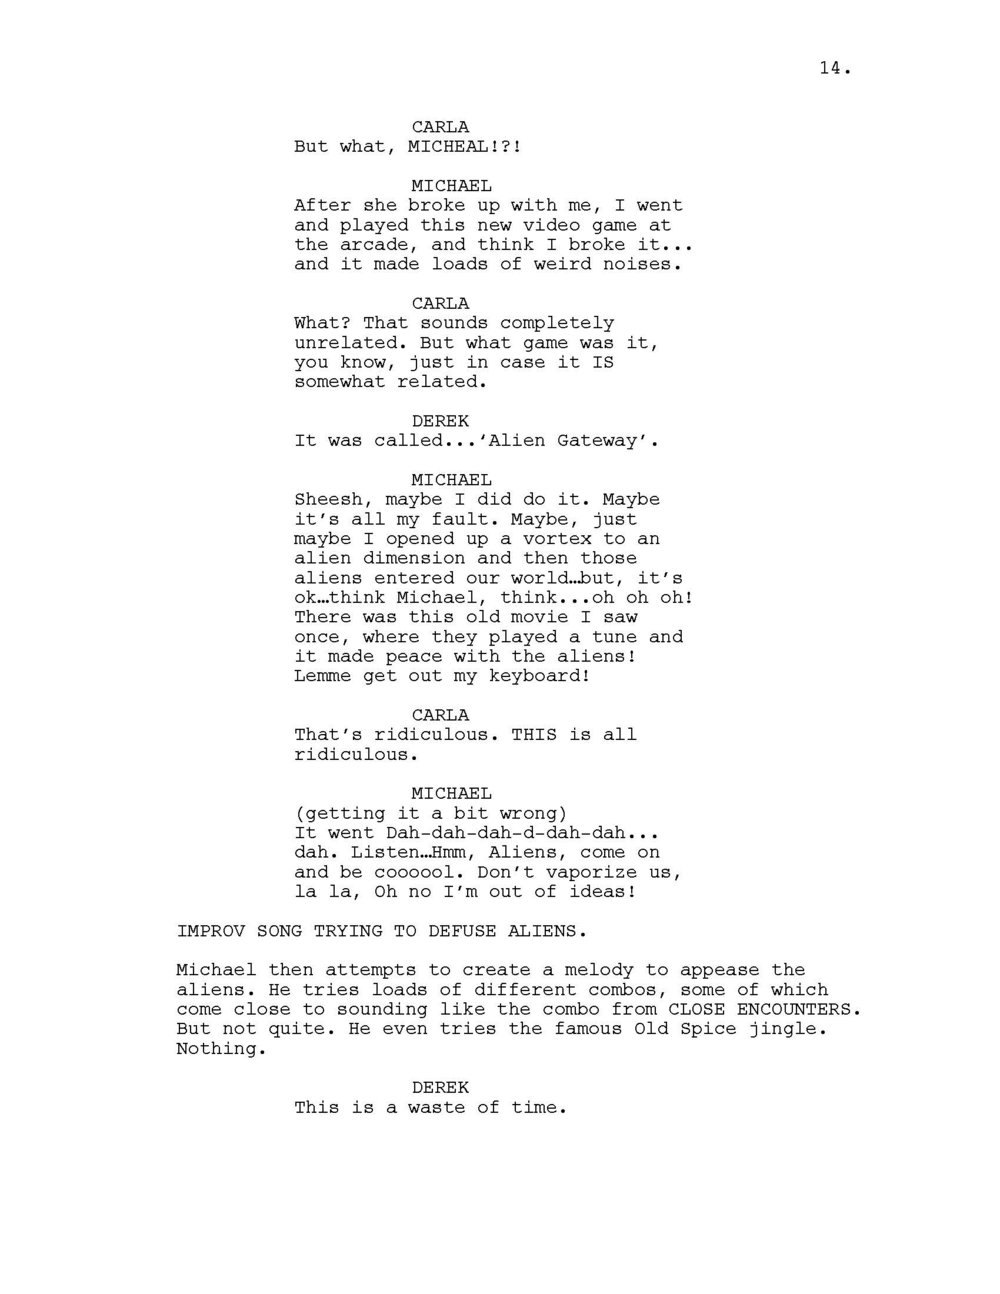 INVISIBLE WORLD SCRIPT_Page_015.jpg